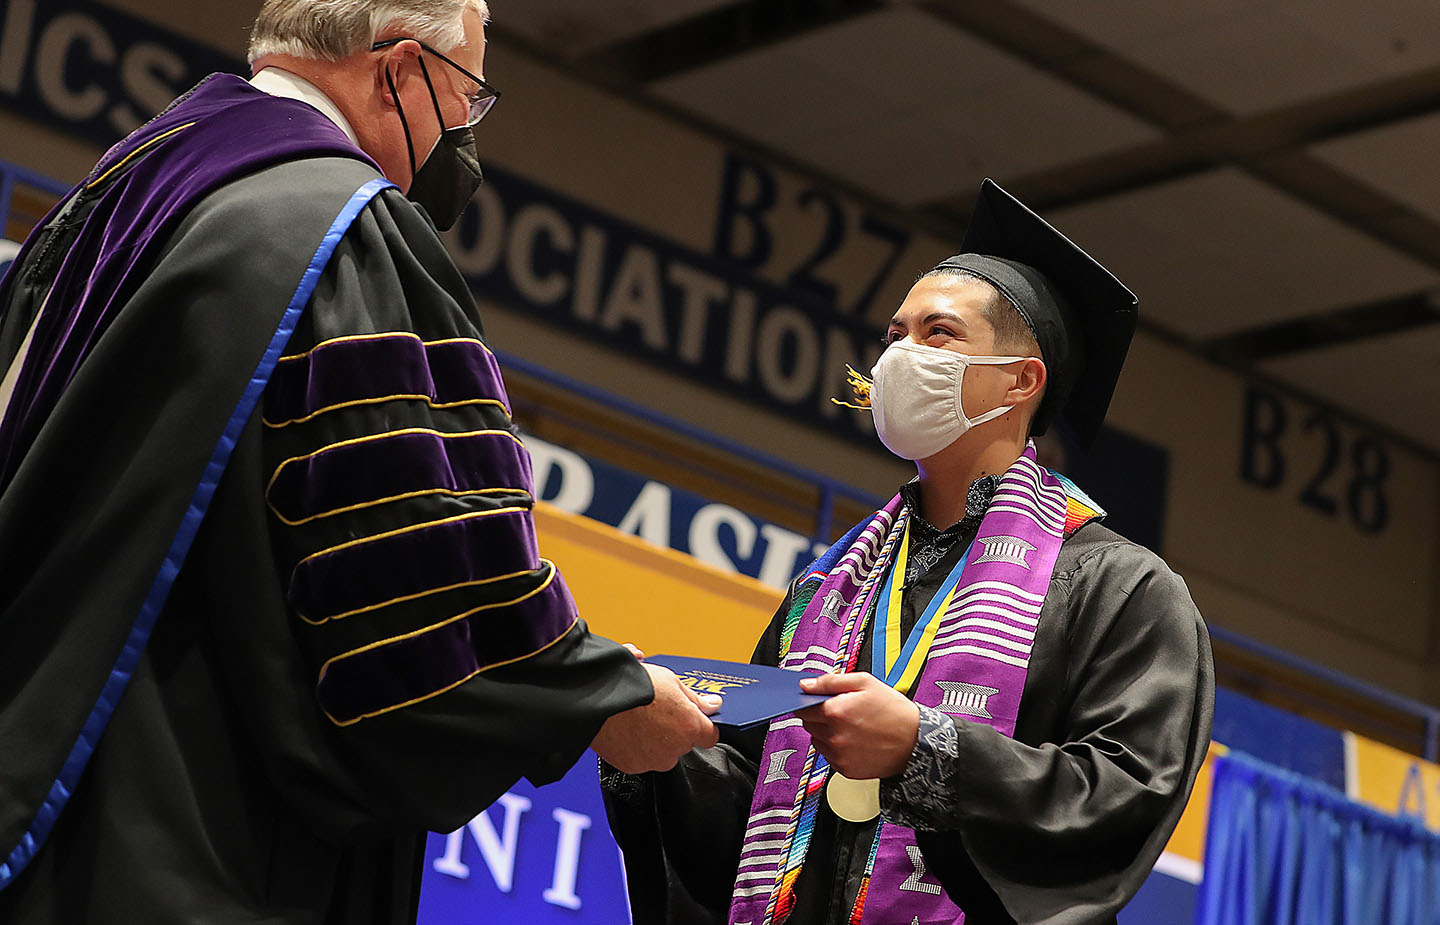 Mark Barrientos of Lexington, right, receives his degree from UNK Chancellor Doug Kristensen during Friday's commencement ceremony at the Health and Sports Center. (Photos by Erika Pritchard, UNK Communications)